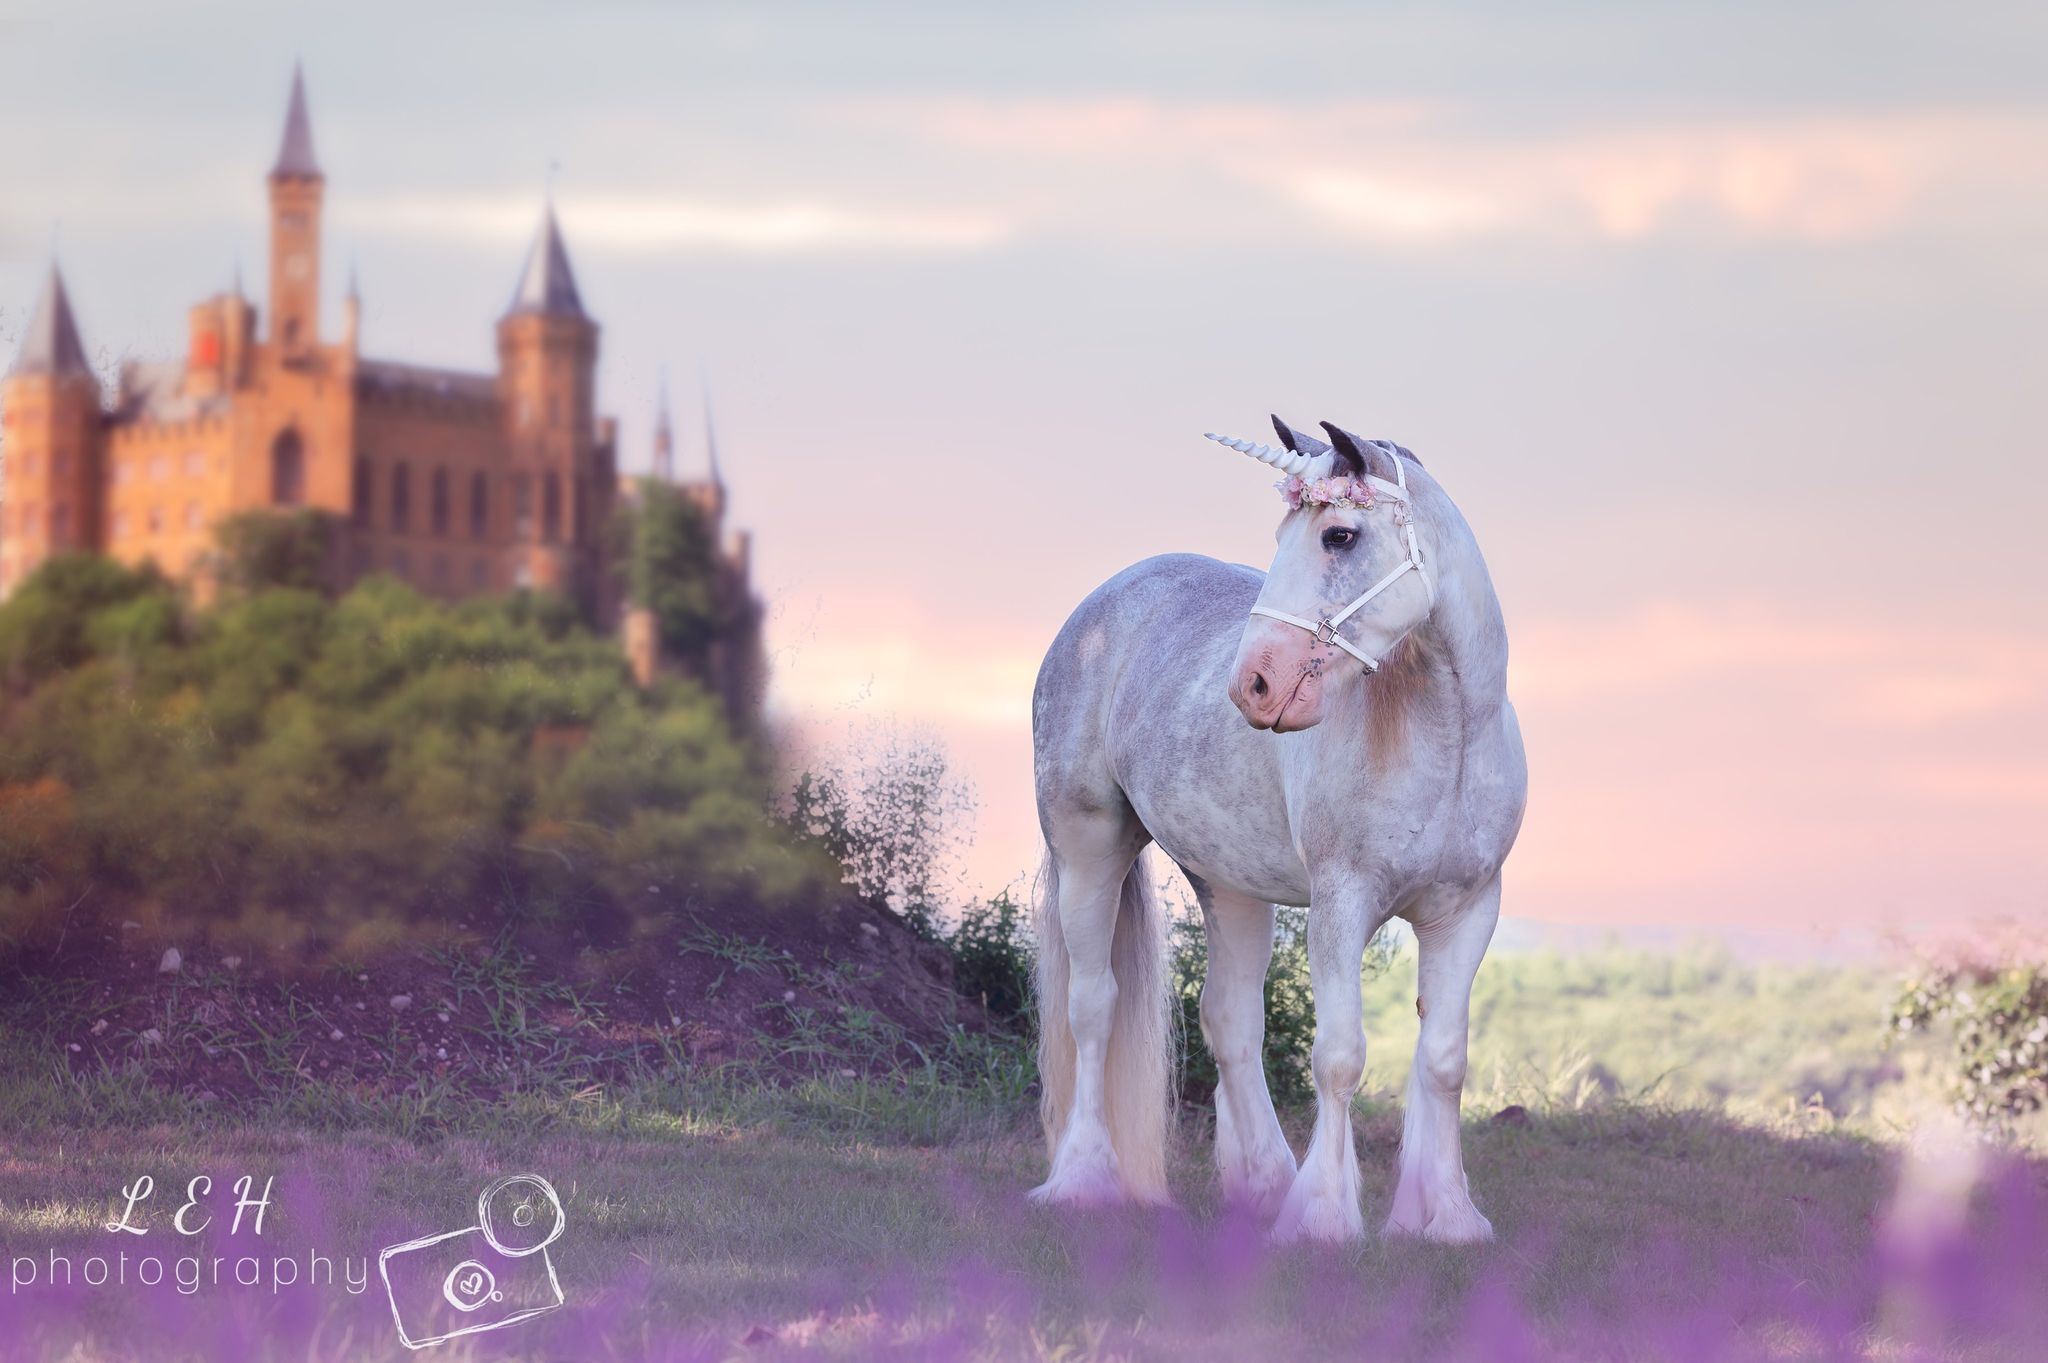 Join us for National Unicorn Day at The Farm